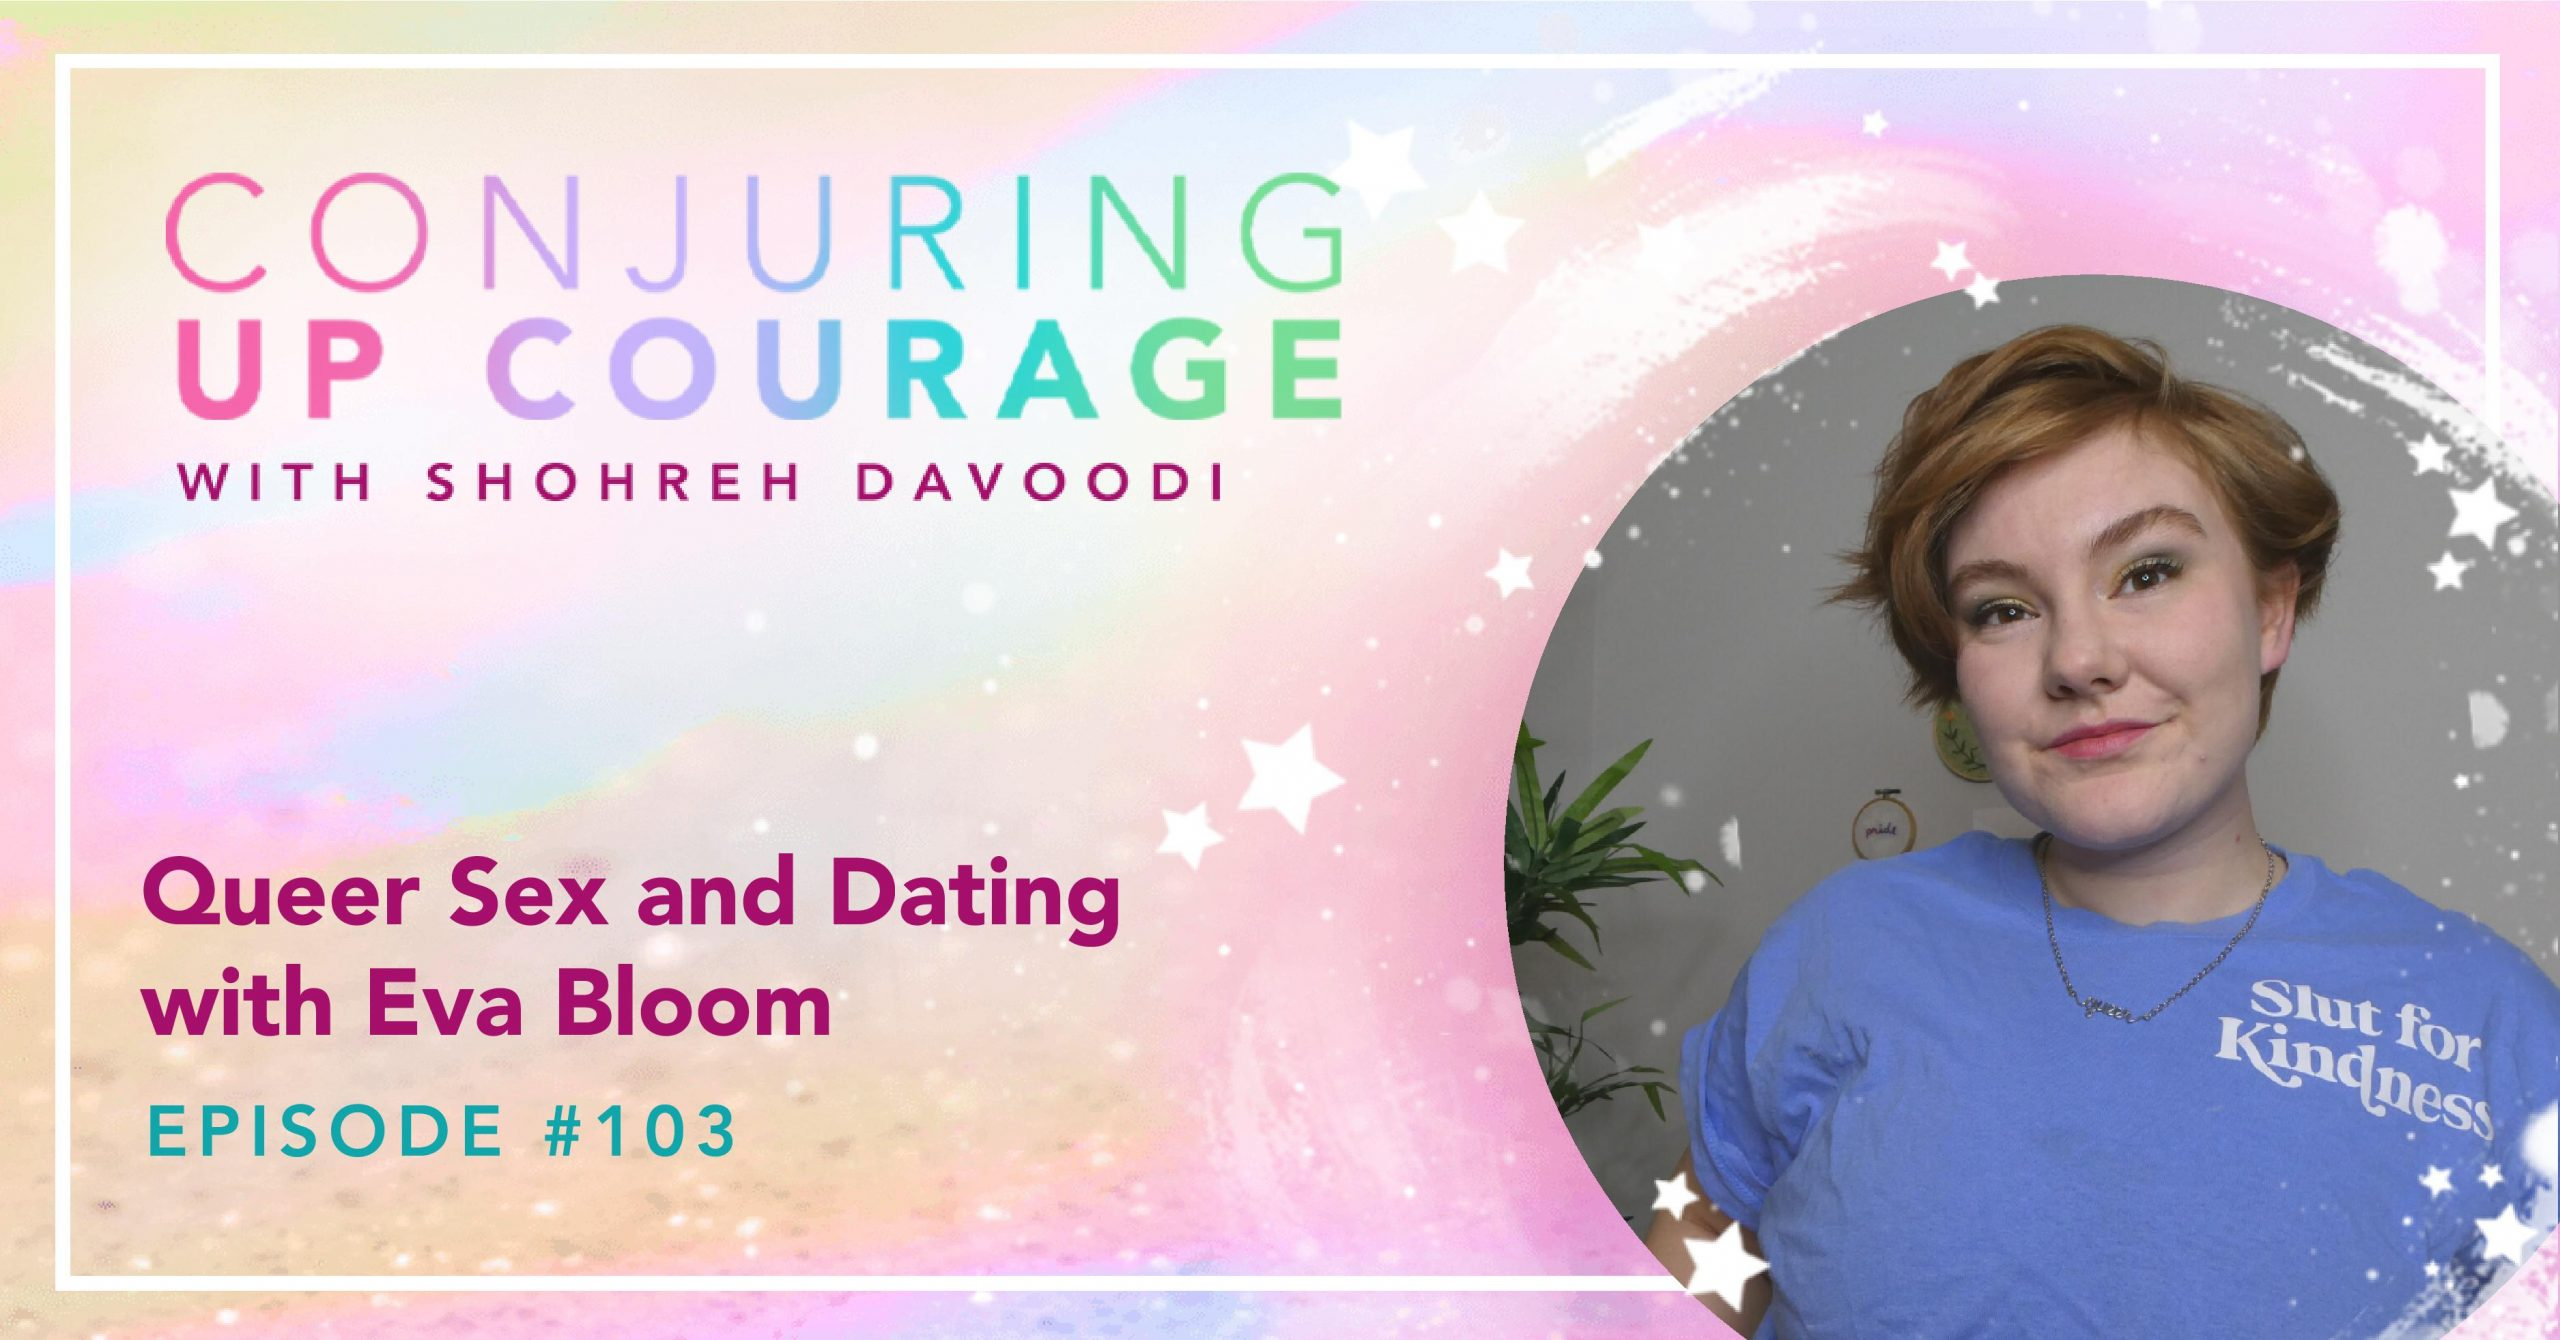 """The Conjuring Up Courage logo, a photo of Eva in a periwinkle blue t-shirt that says, """"Slut for Kindness,"""" and the words, """"Queer Sex and Dating Episode #103"""""""